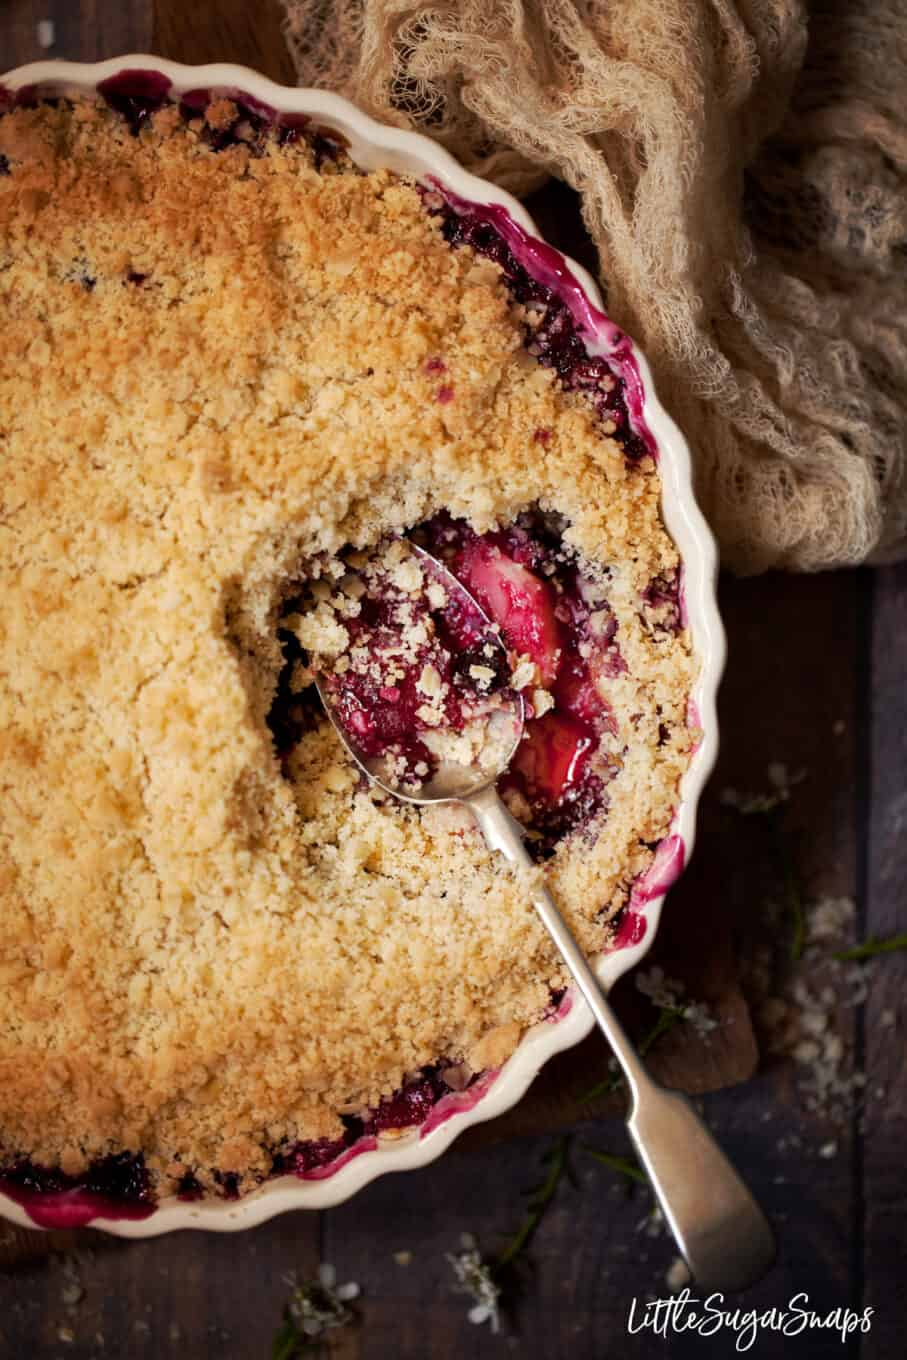 A serving dish filled with apple and blackcurrant crumble with a serving taken out and a spoon resting in the dish